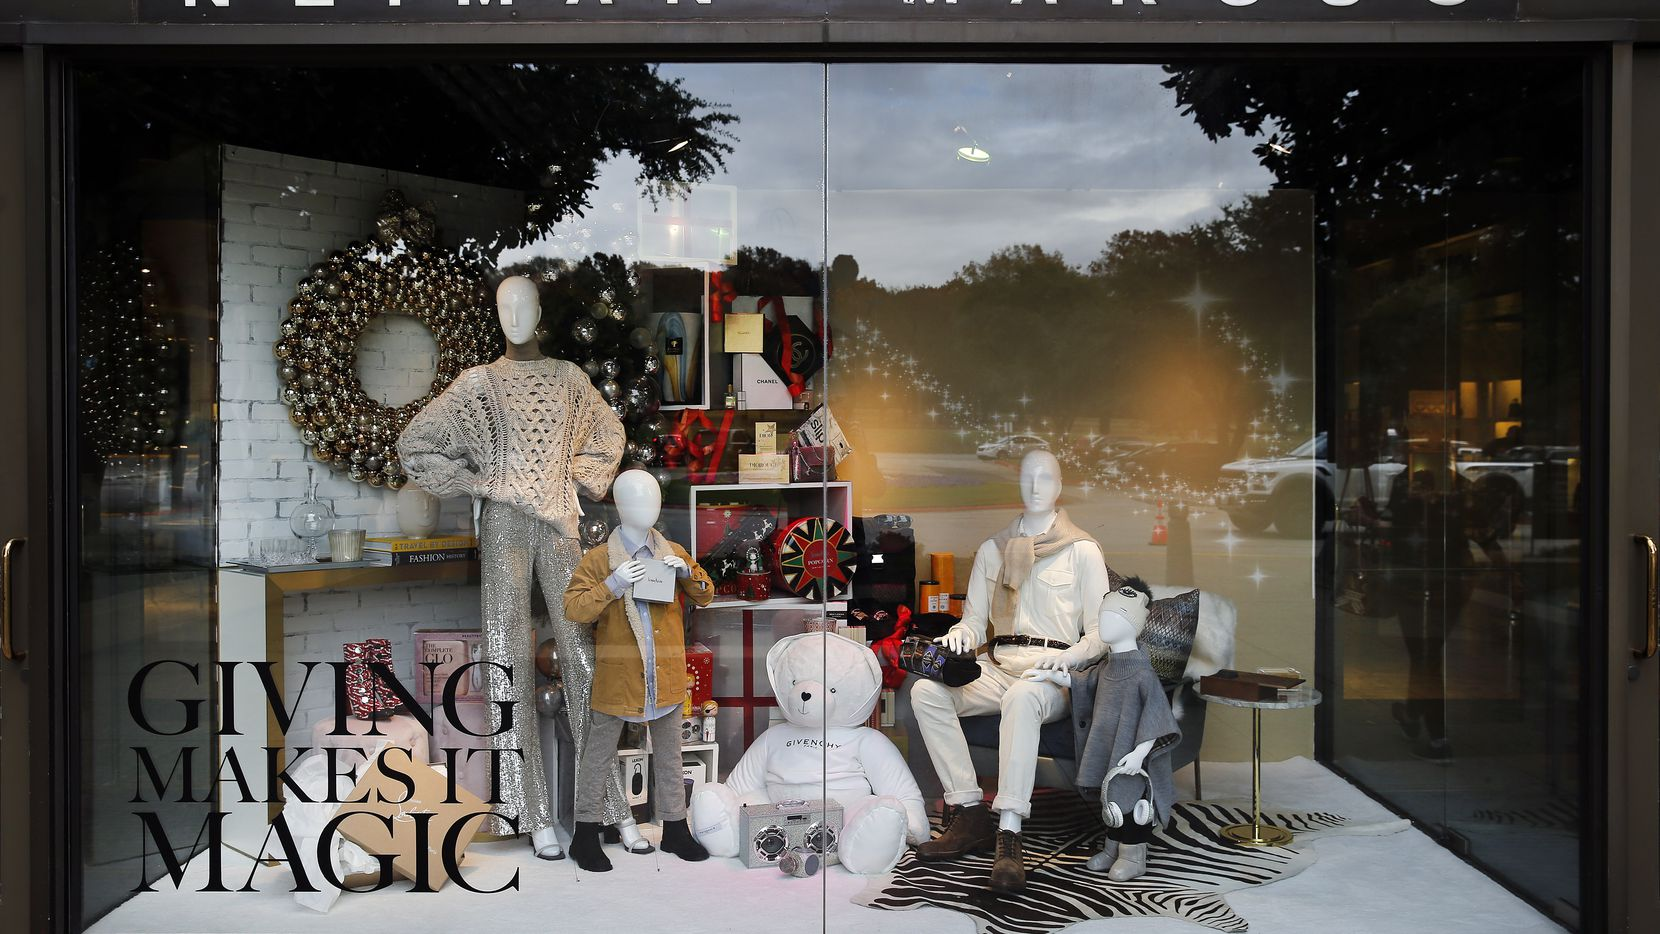 A view of the Neiman Marcus Christmas window display at NorthPark Center in Dallas.